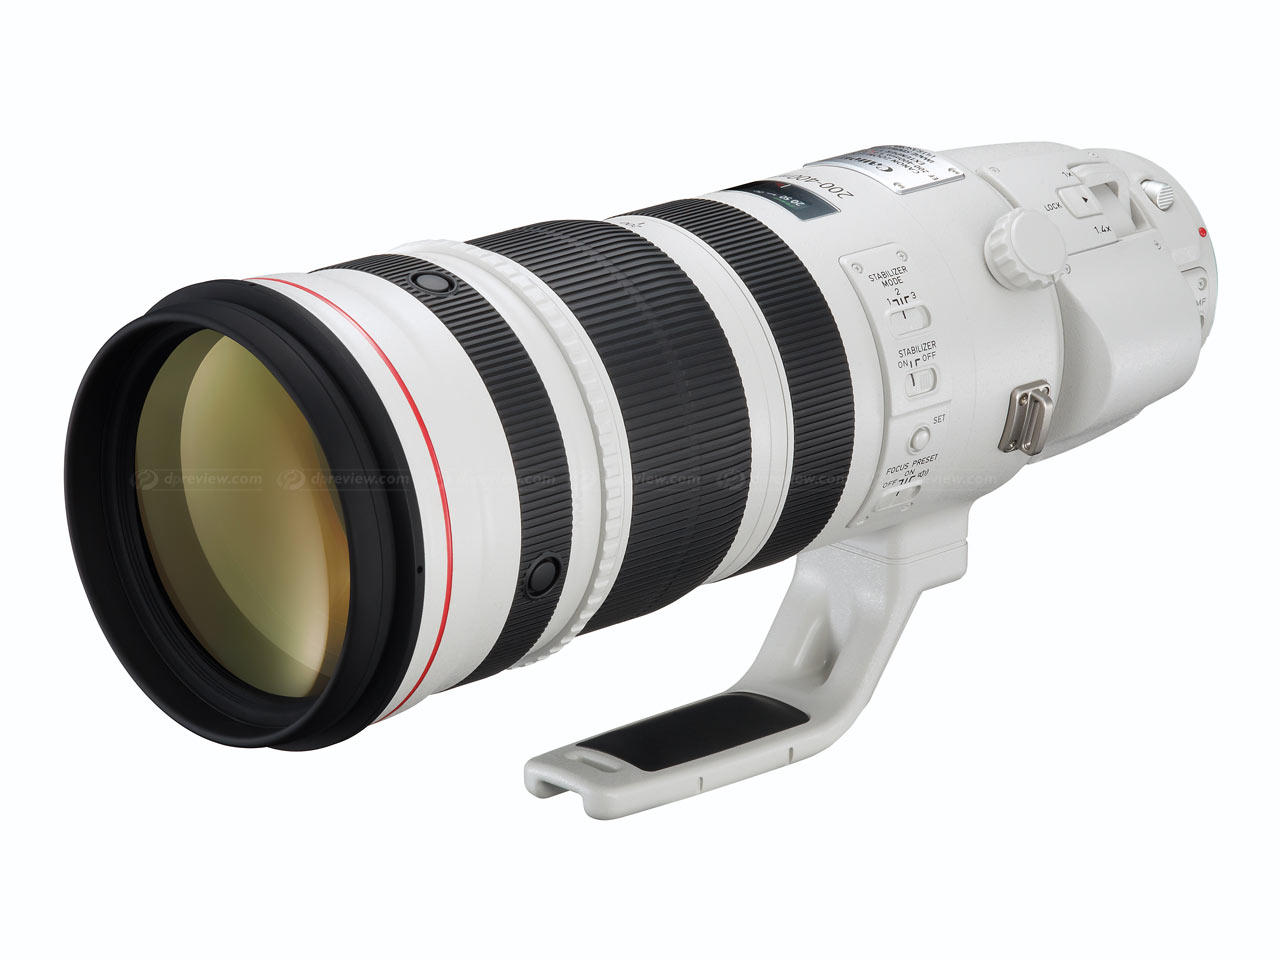 Canon 200-400mm f/4L IS Lens with built-in 1.4x TC